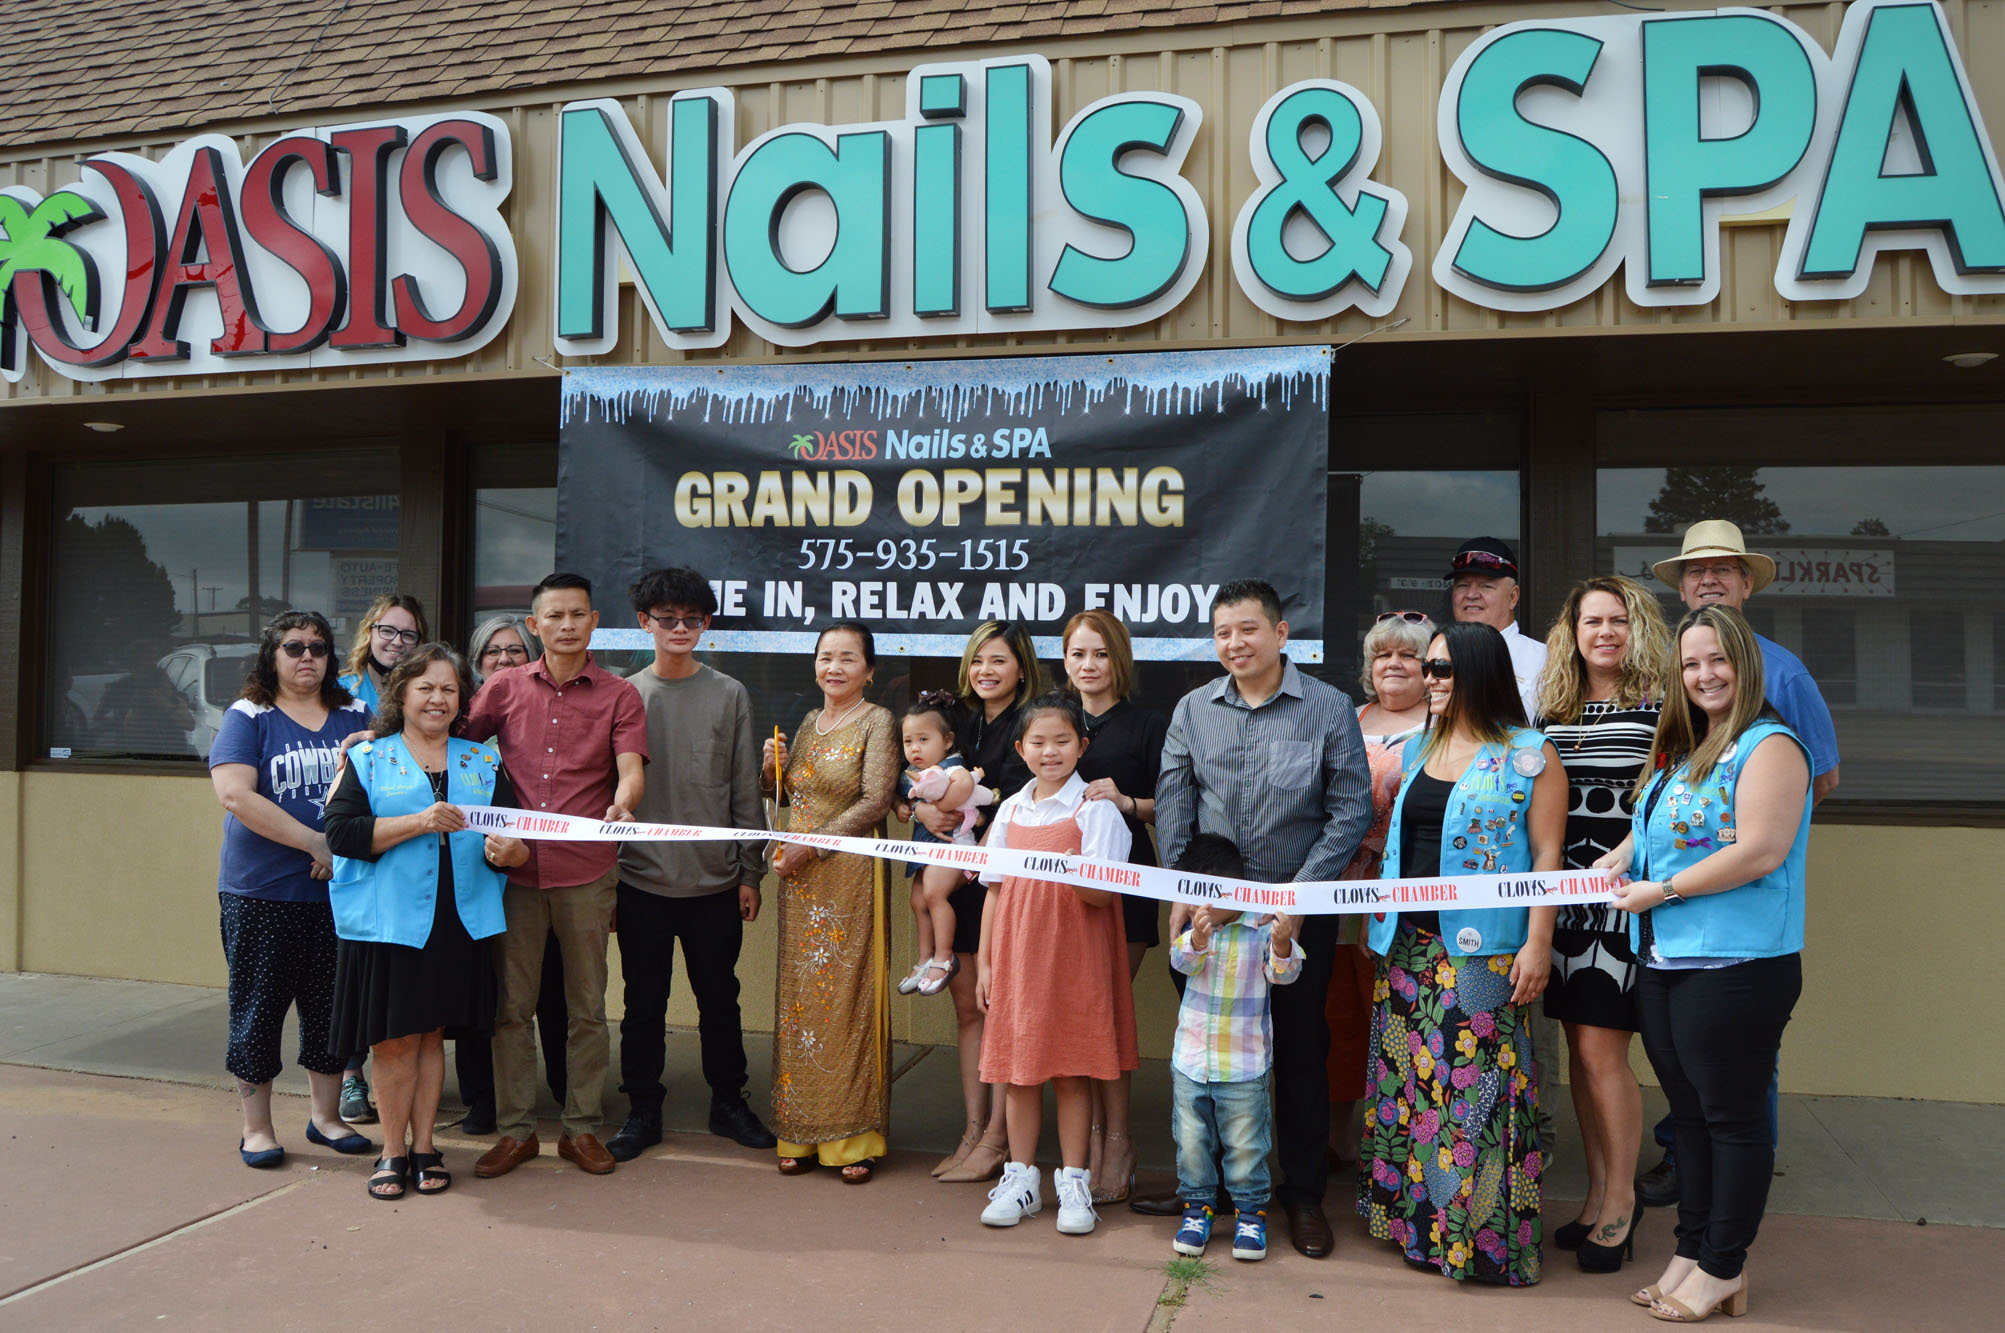 Tuesday, July 6, 2021 - Oasis Nails & Spa, 501 Commerce Way #A